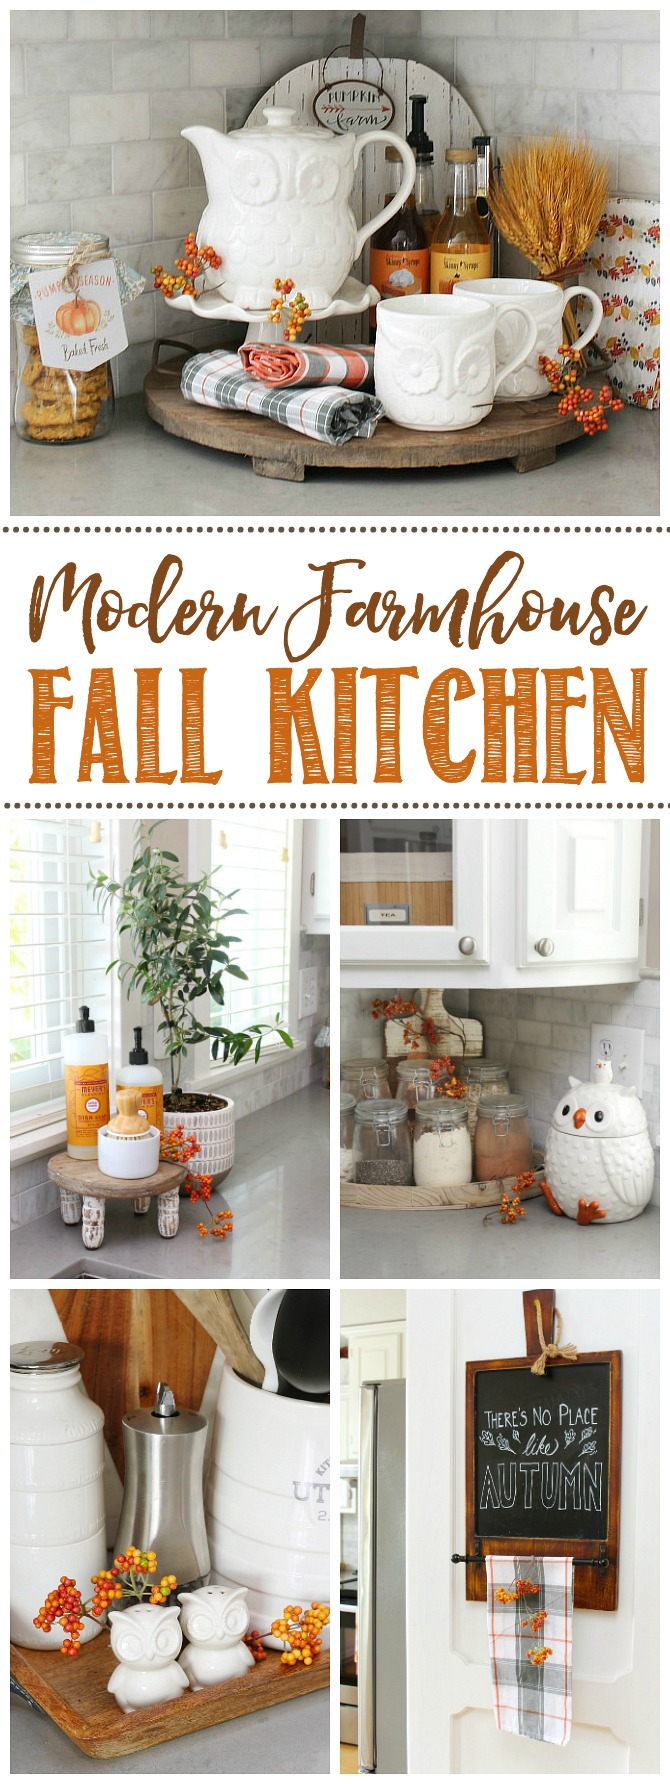 Collection of pretty fall kitchen decor ideas using orange.